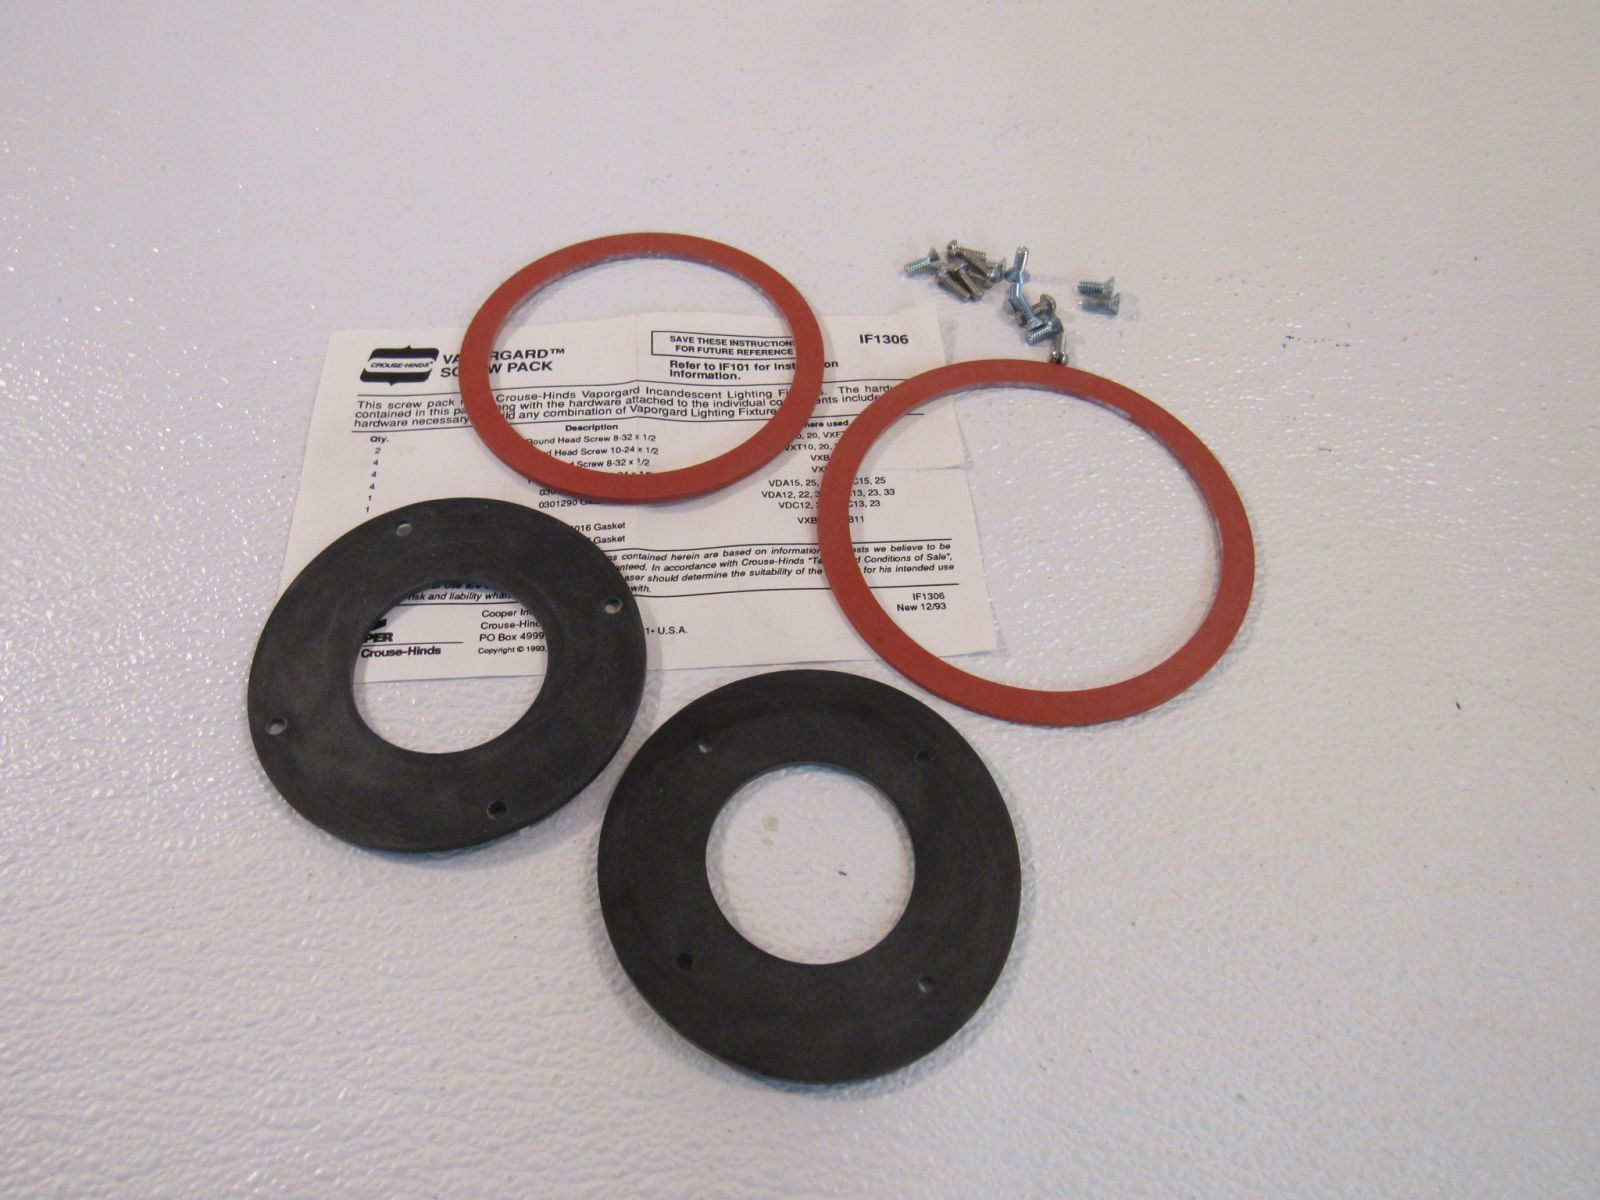 Crouse Hinds Vaporgard Screw And Gasket Pack 4 Gaskets 18 Screws IF1306